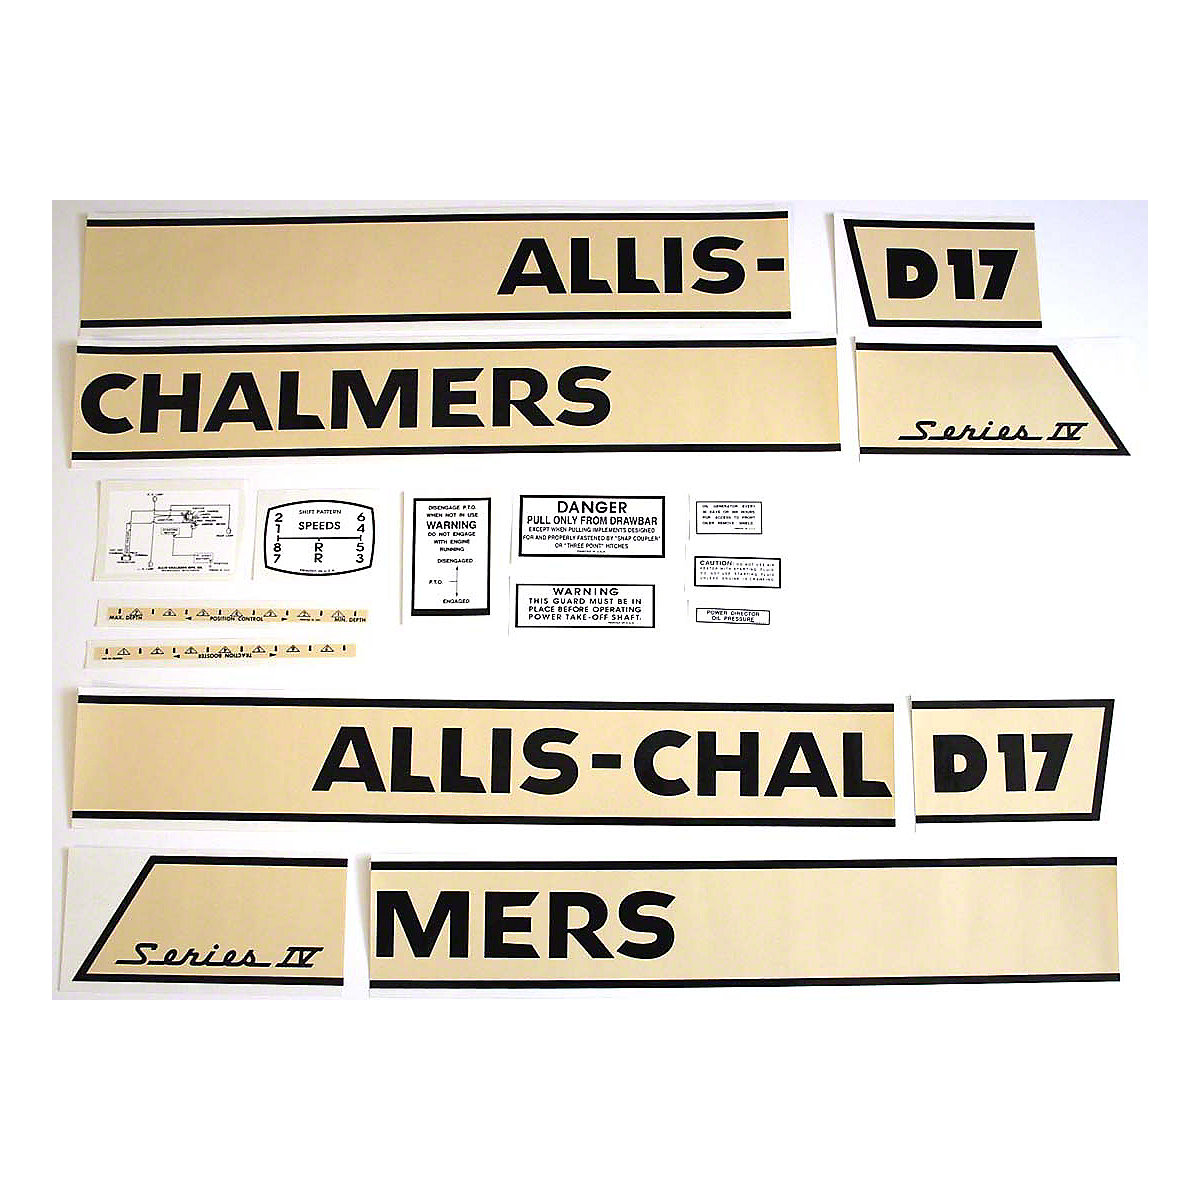 Decal Set For Allis Chalmers D17 Series IV Gas Tractors 1964 And Up